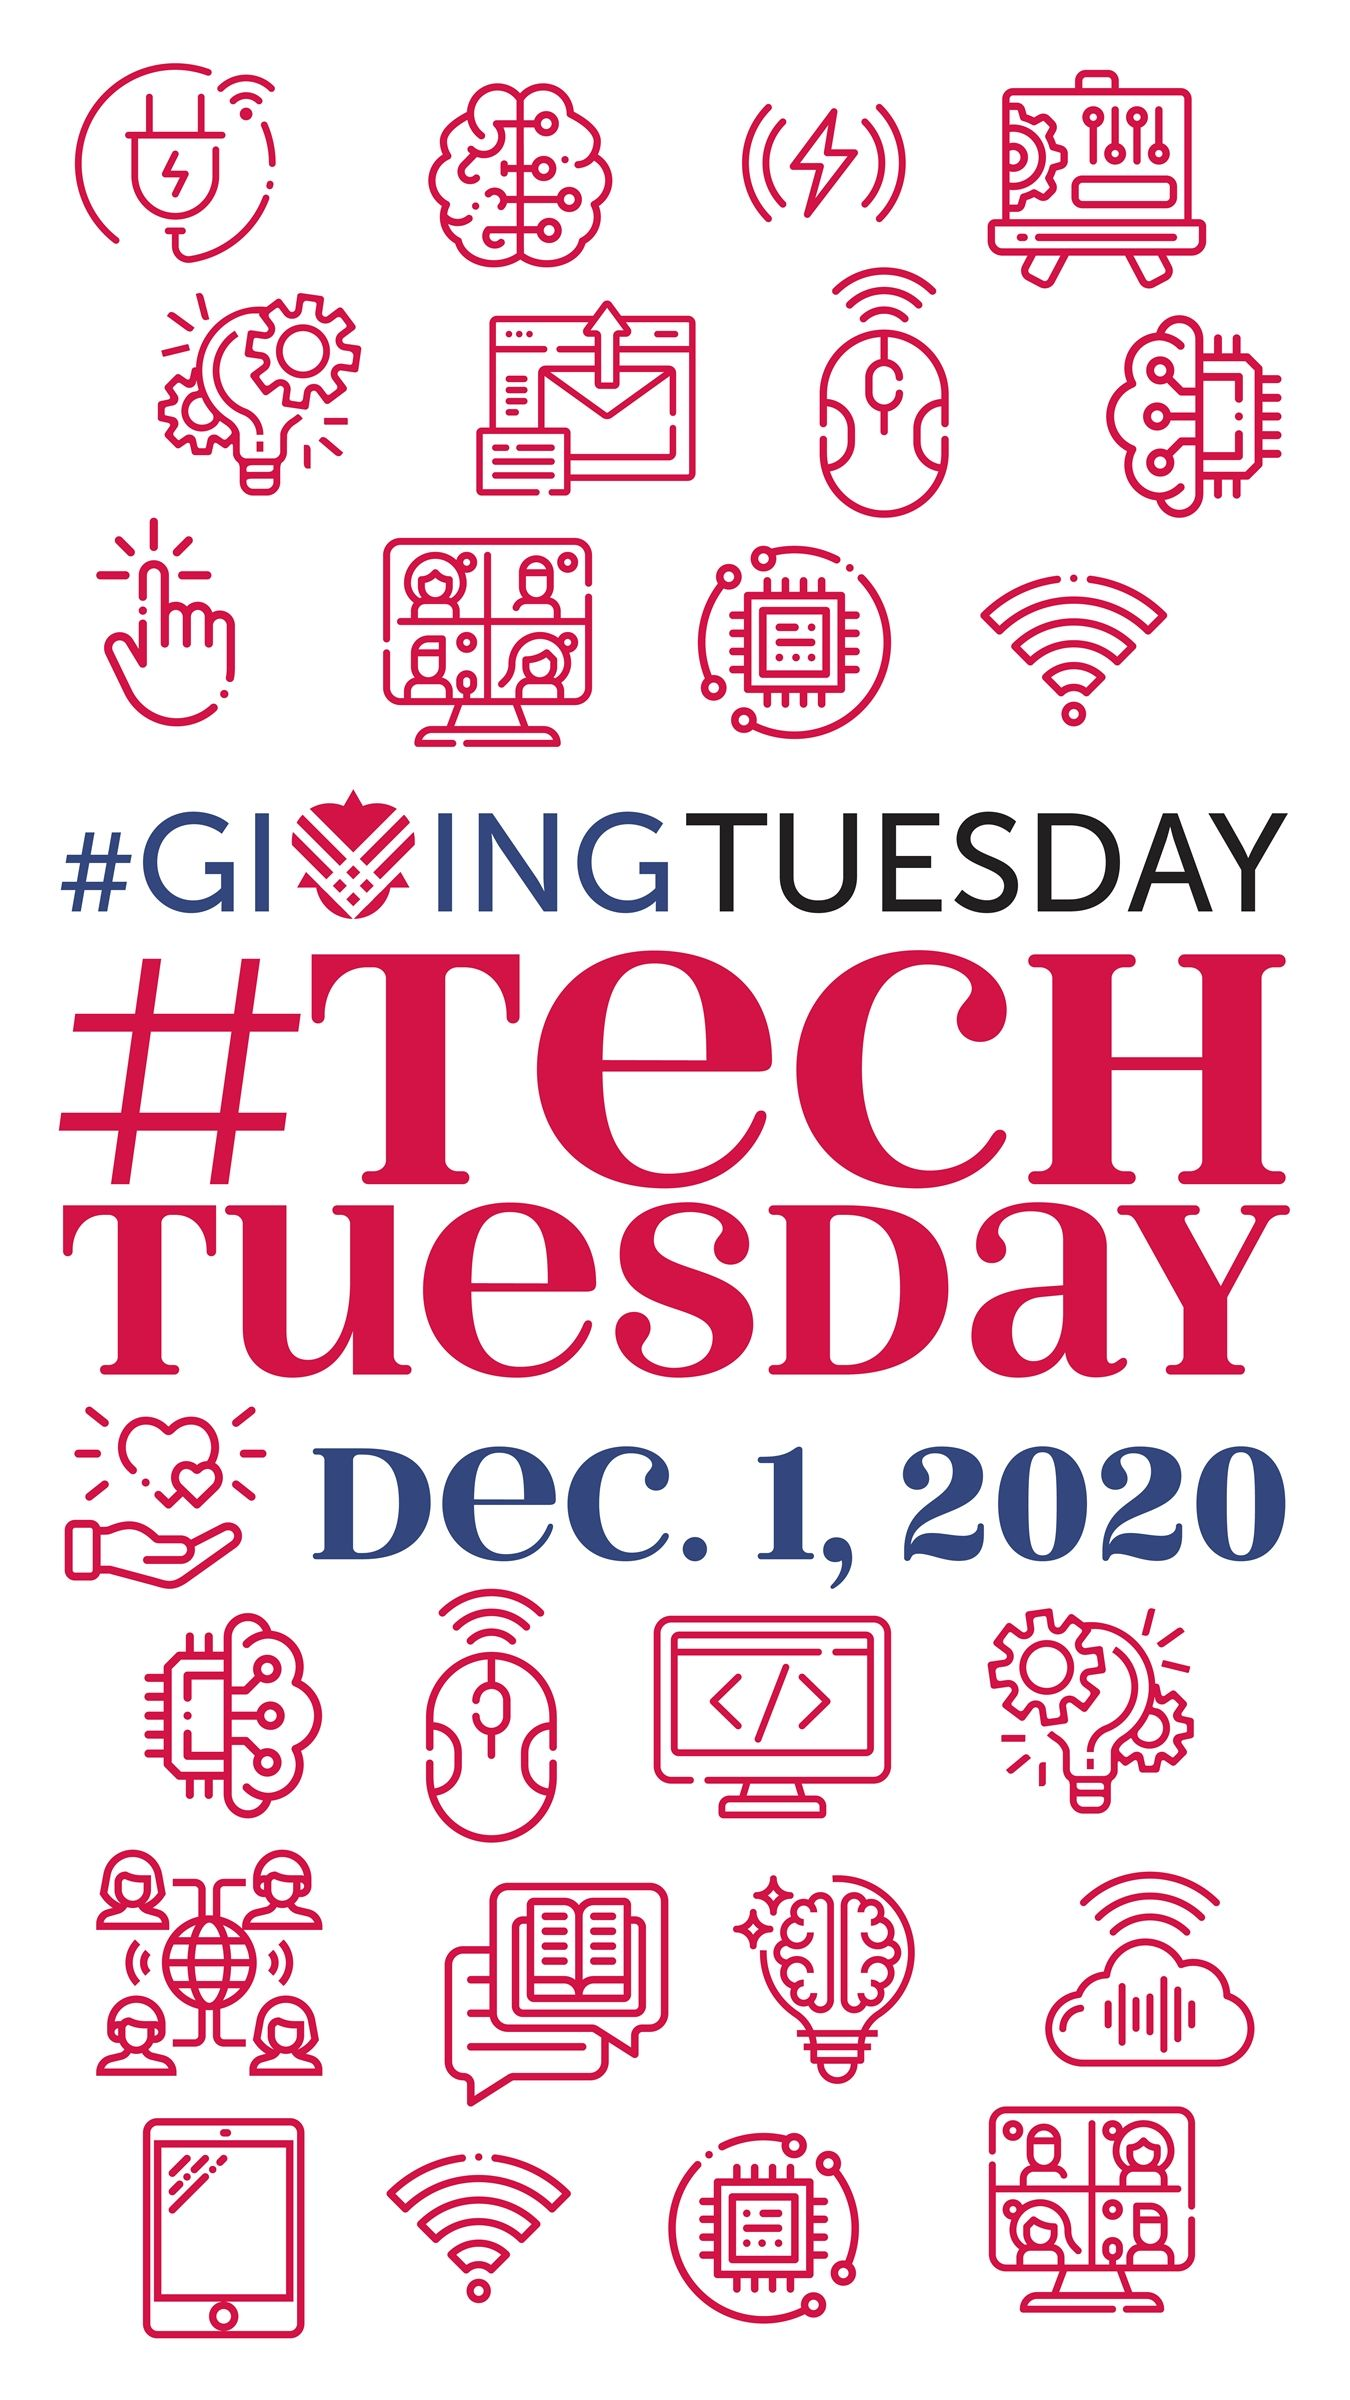 Help us raise $50,000 in one day on #TechTuesday!